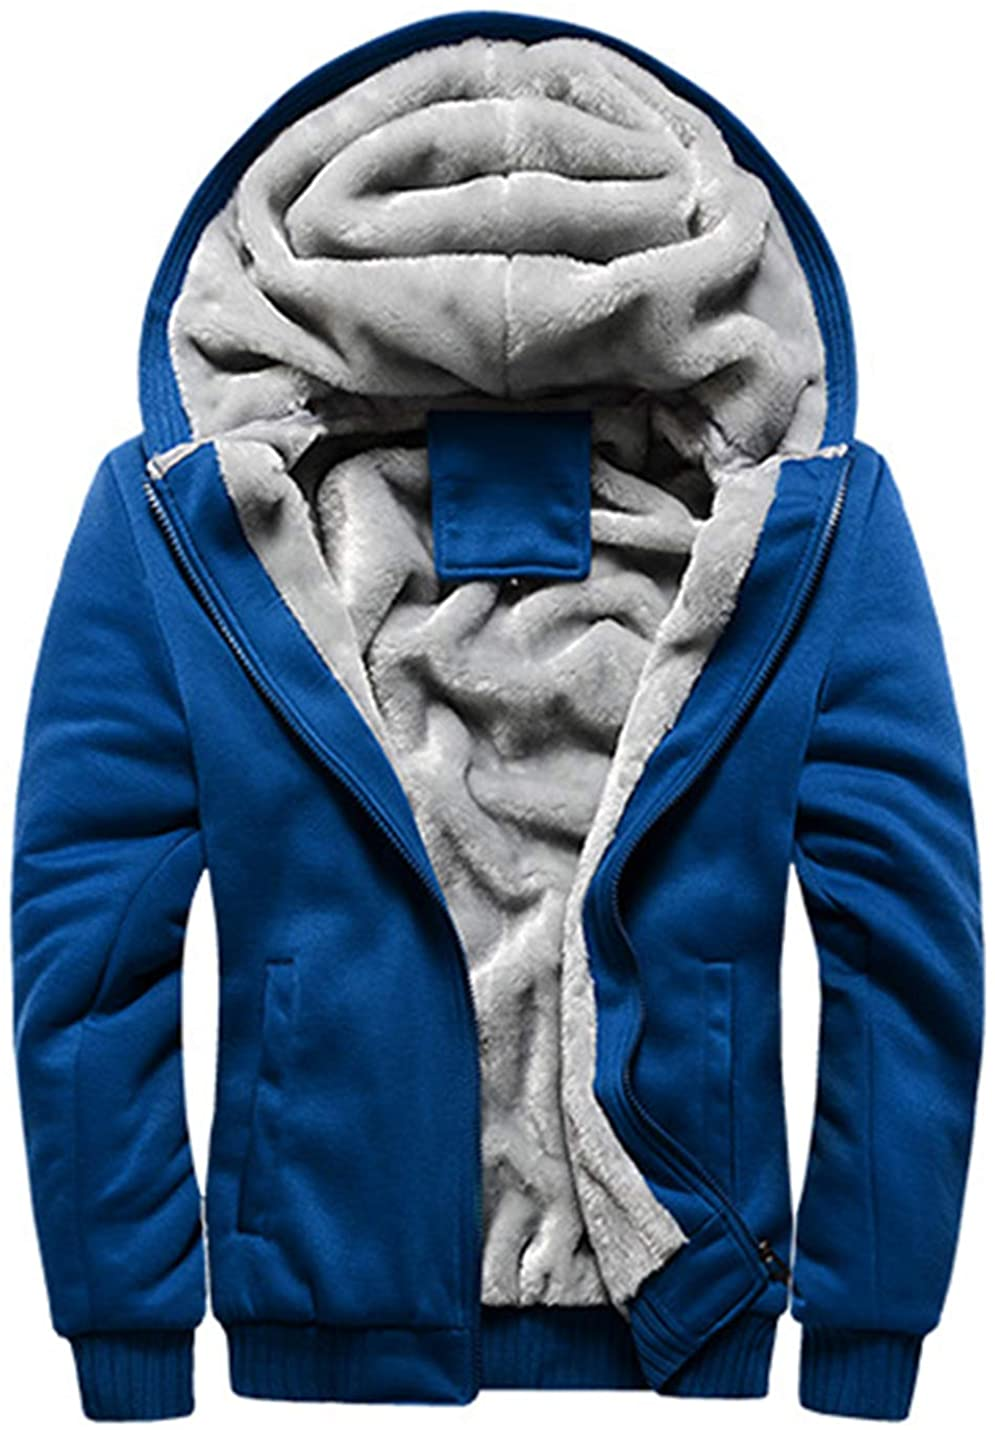 Flygo Men's Winter Sherpa Lined Hoodie Jacket Thermal Full Zip Hooded Fleece Sweatshirt